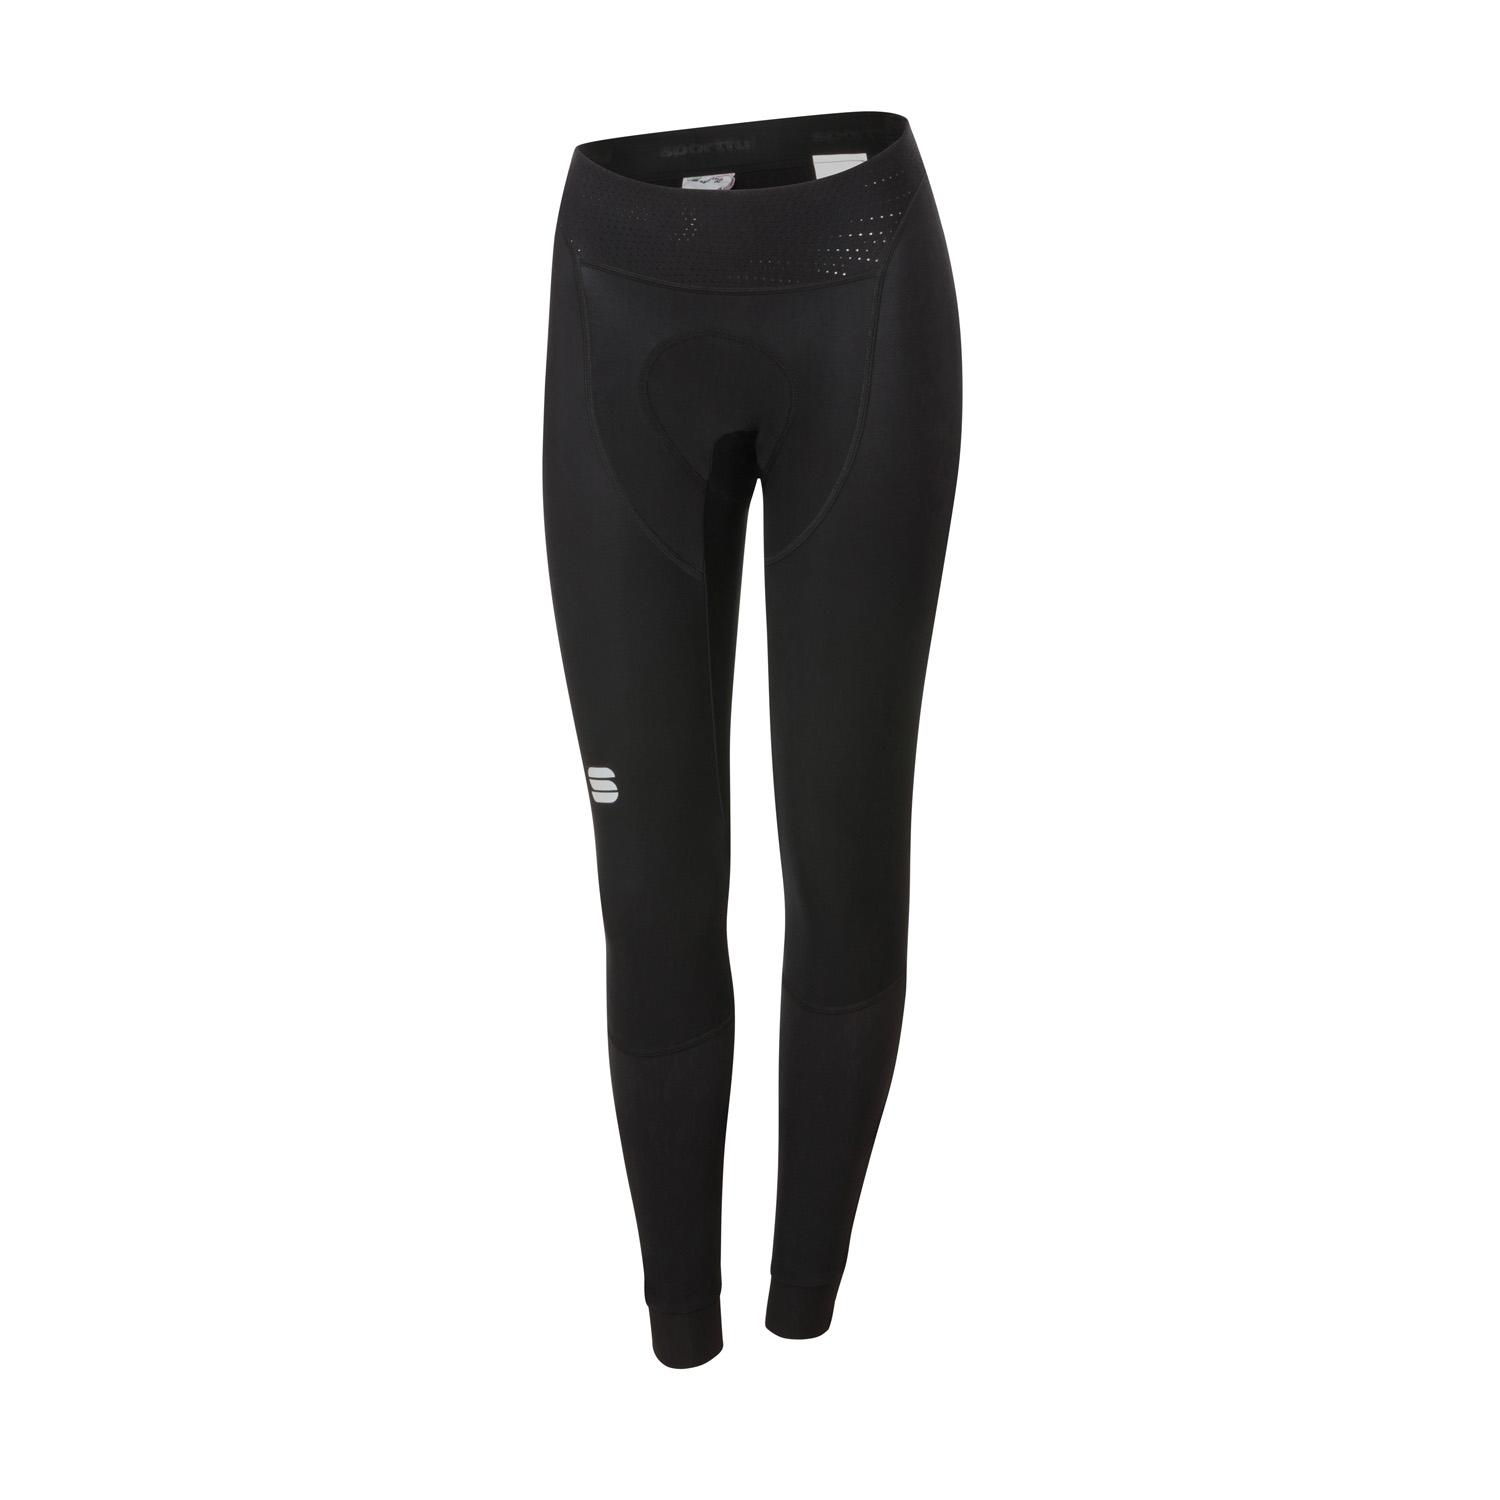 Sportful Fietsbroek lang zonder bretels Dames Zwart - TOTAL COMFORT WOMAN TIGHT BLACK